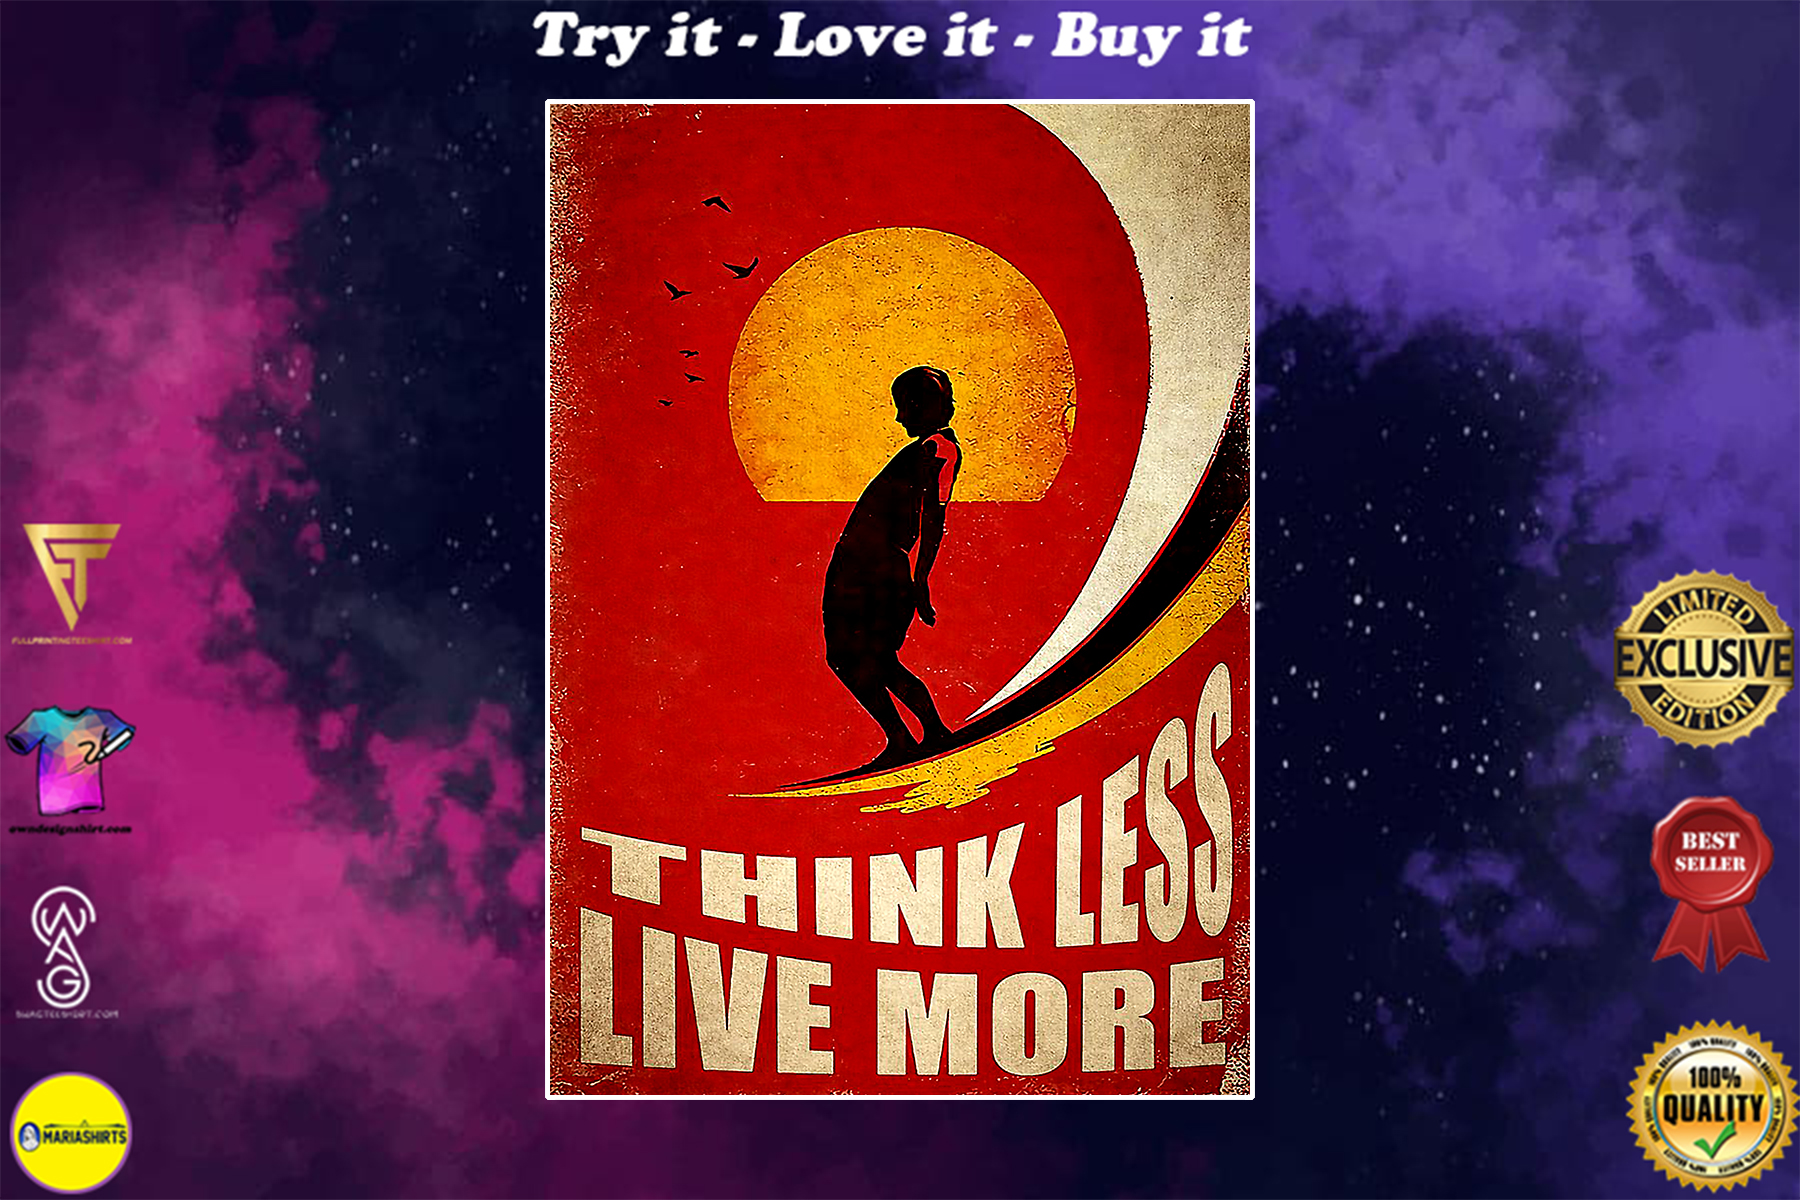 surfing think less live more vintage poster